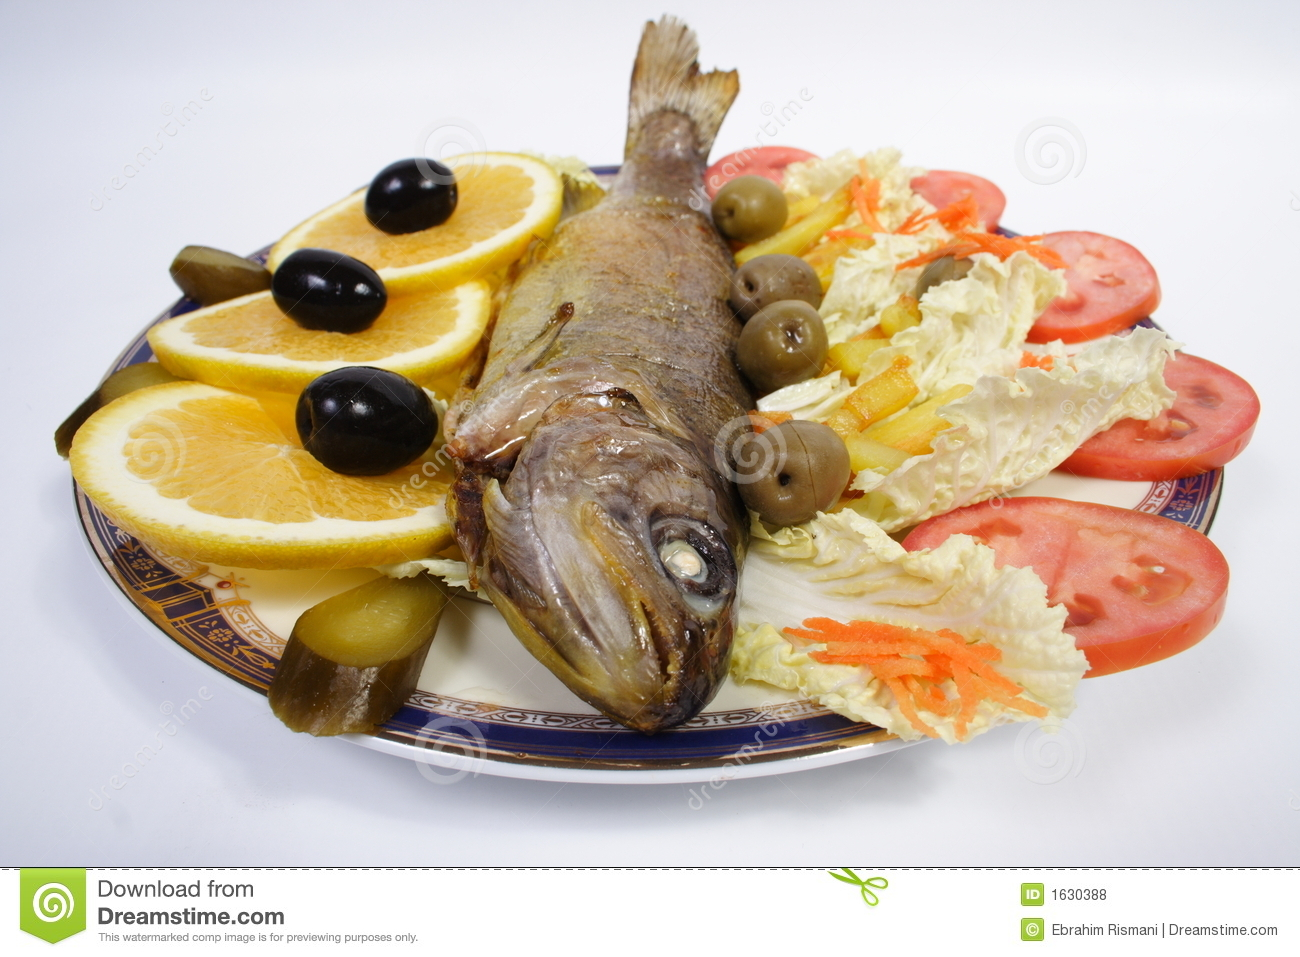 Fish food royalty free stock photos image 1630388 for Is fish meat